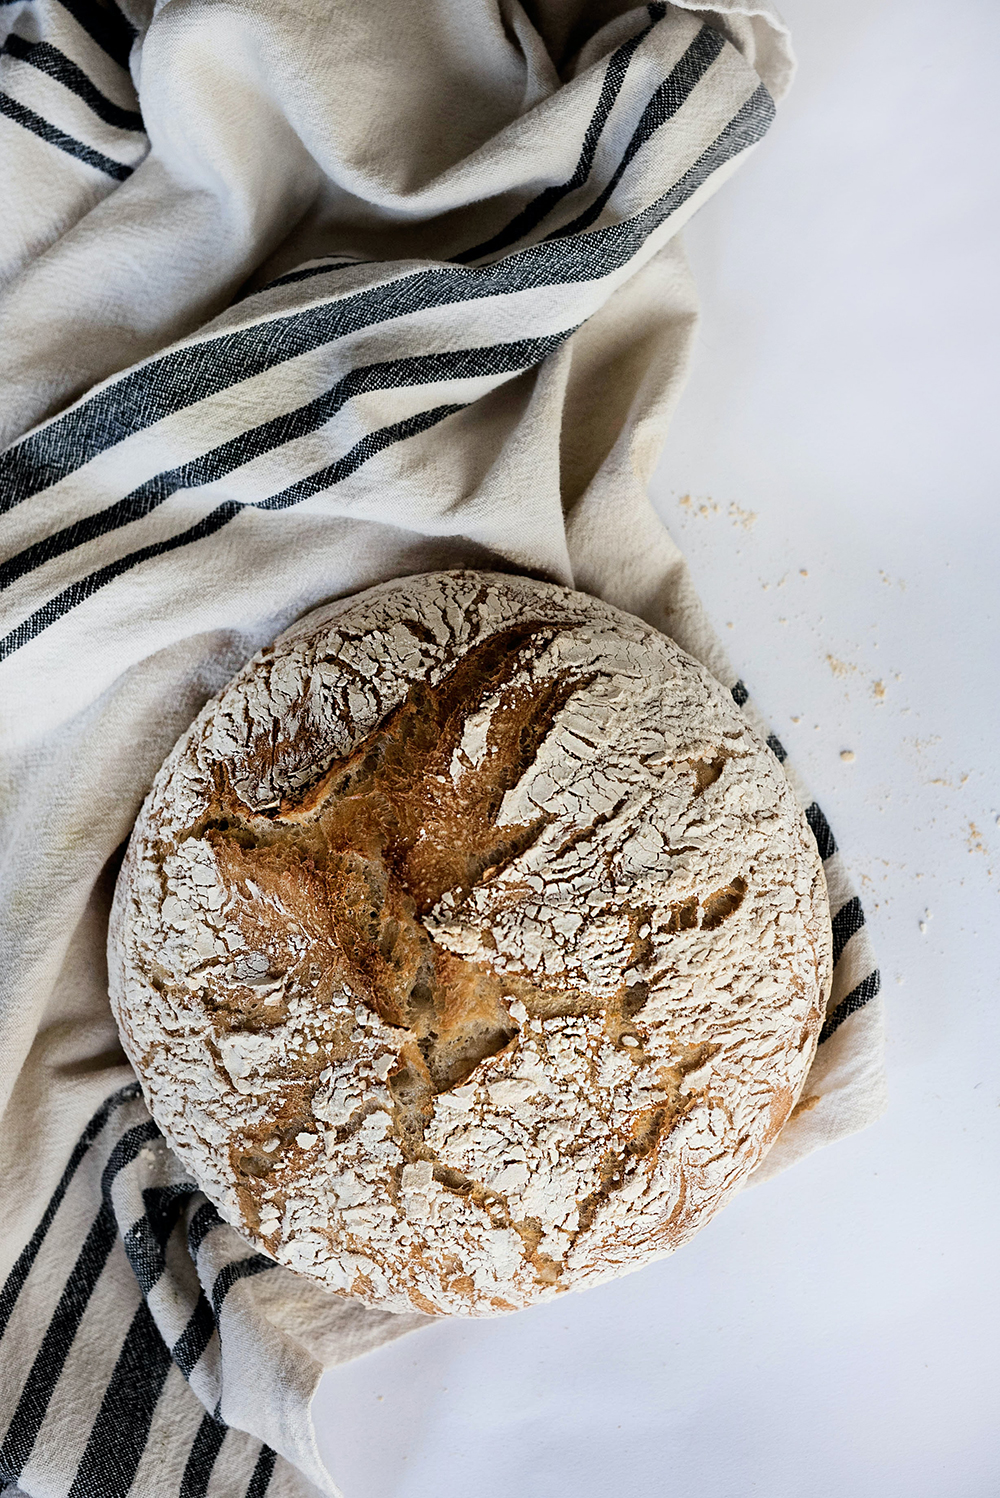 A loaf of Sophie's Bread. Baked using Eden Valley Biodynamic Premium Bakers Flour.